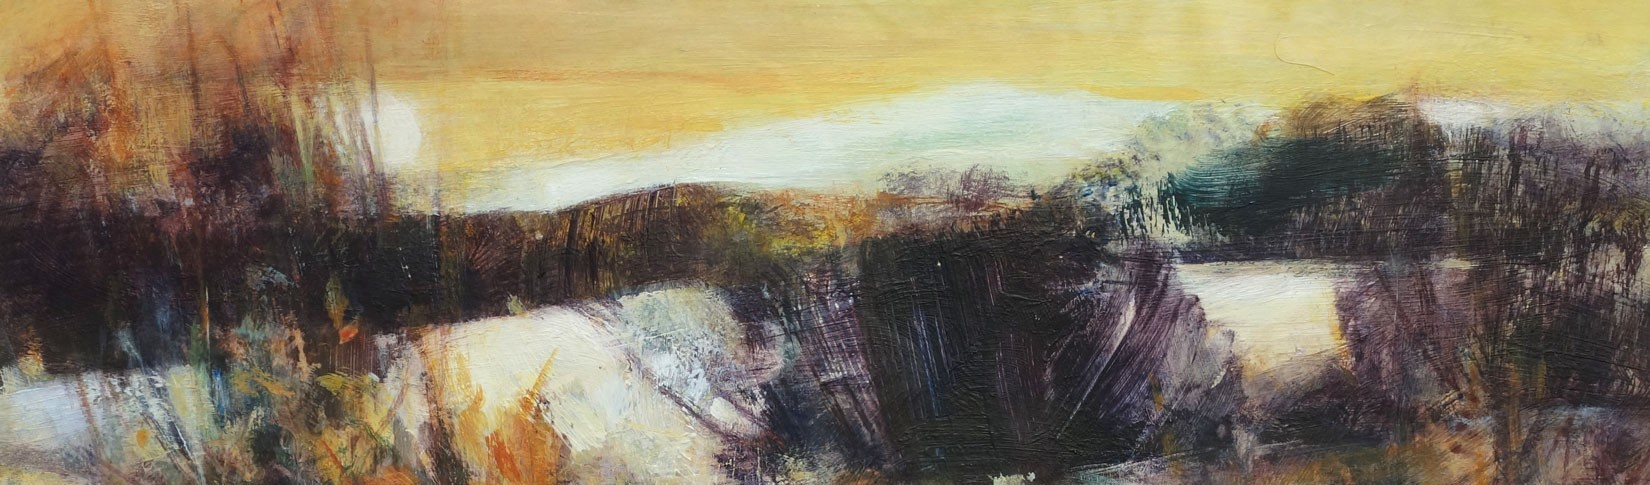 Christmas Exhibition 2018 at Tolquhon Gallery